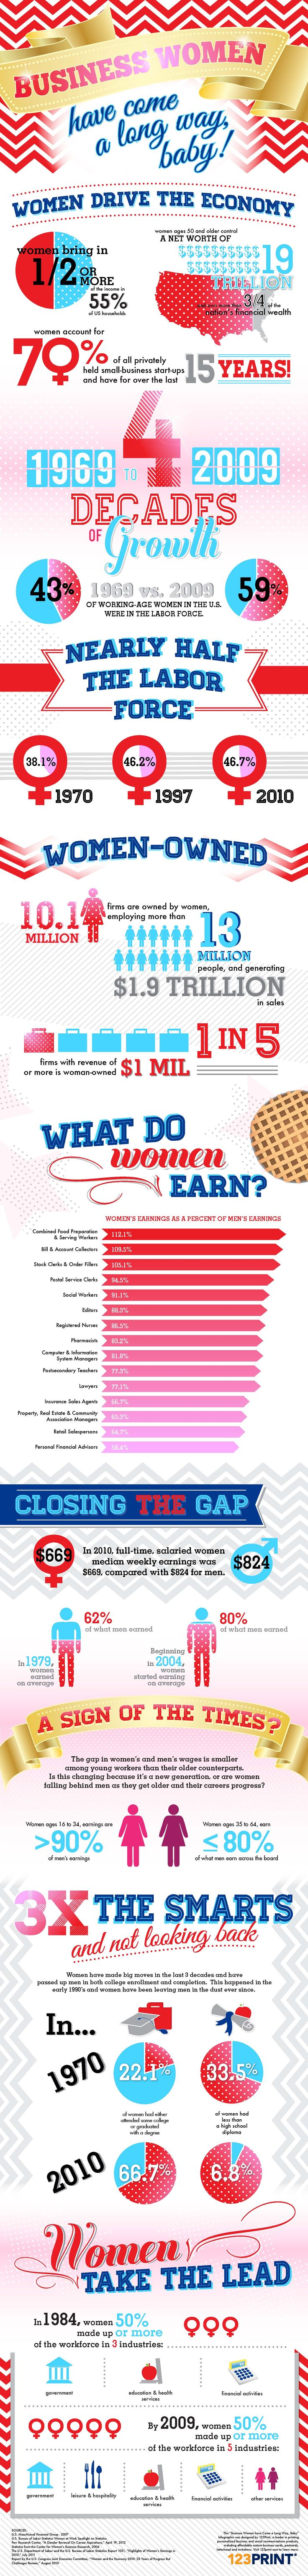 Business Women Have Come A Long Way - Check out this infographic to view facts and statistics on business women.